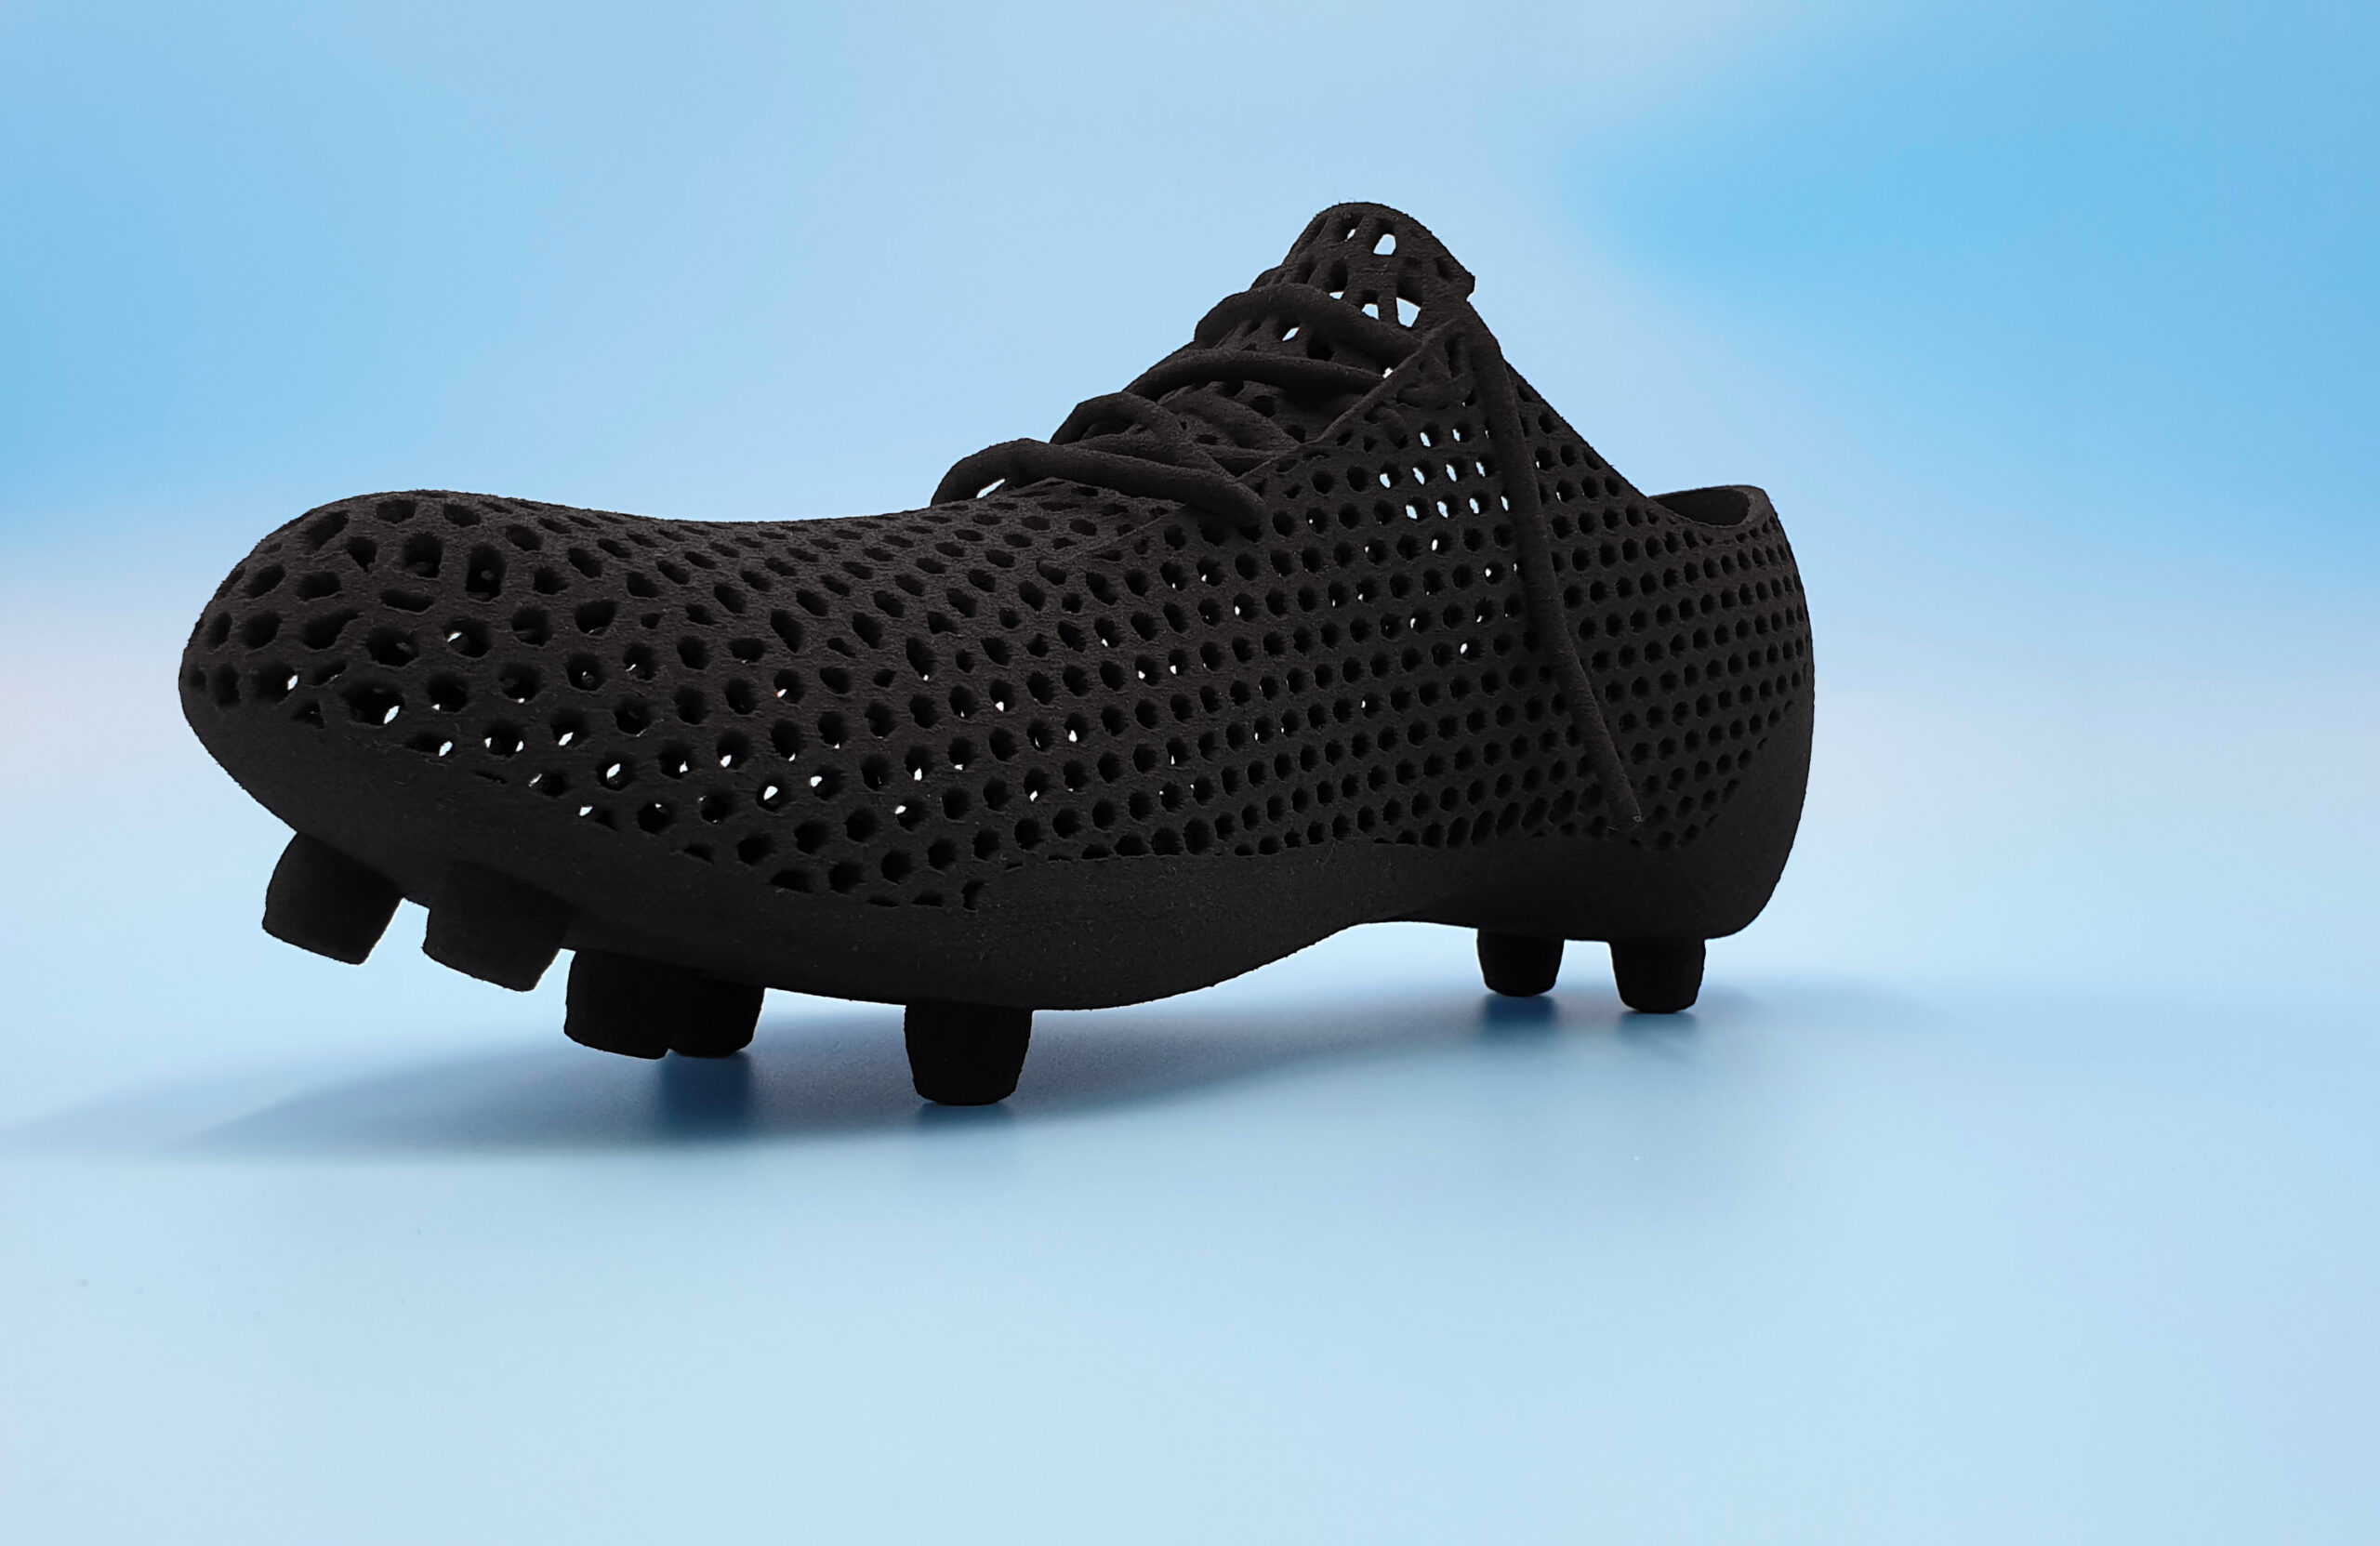 Flexible Shoe made with TPU Shore Hardness A 60 using Selective Lasersintering, SLS